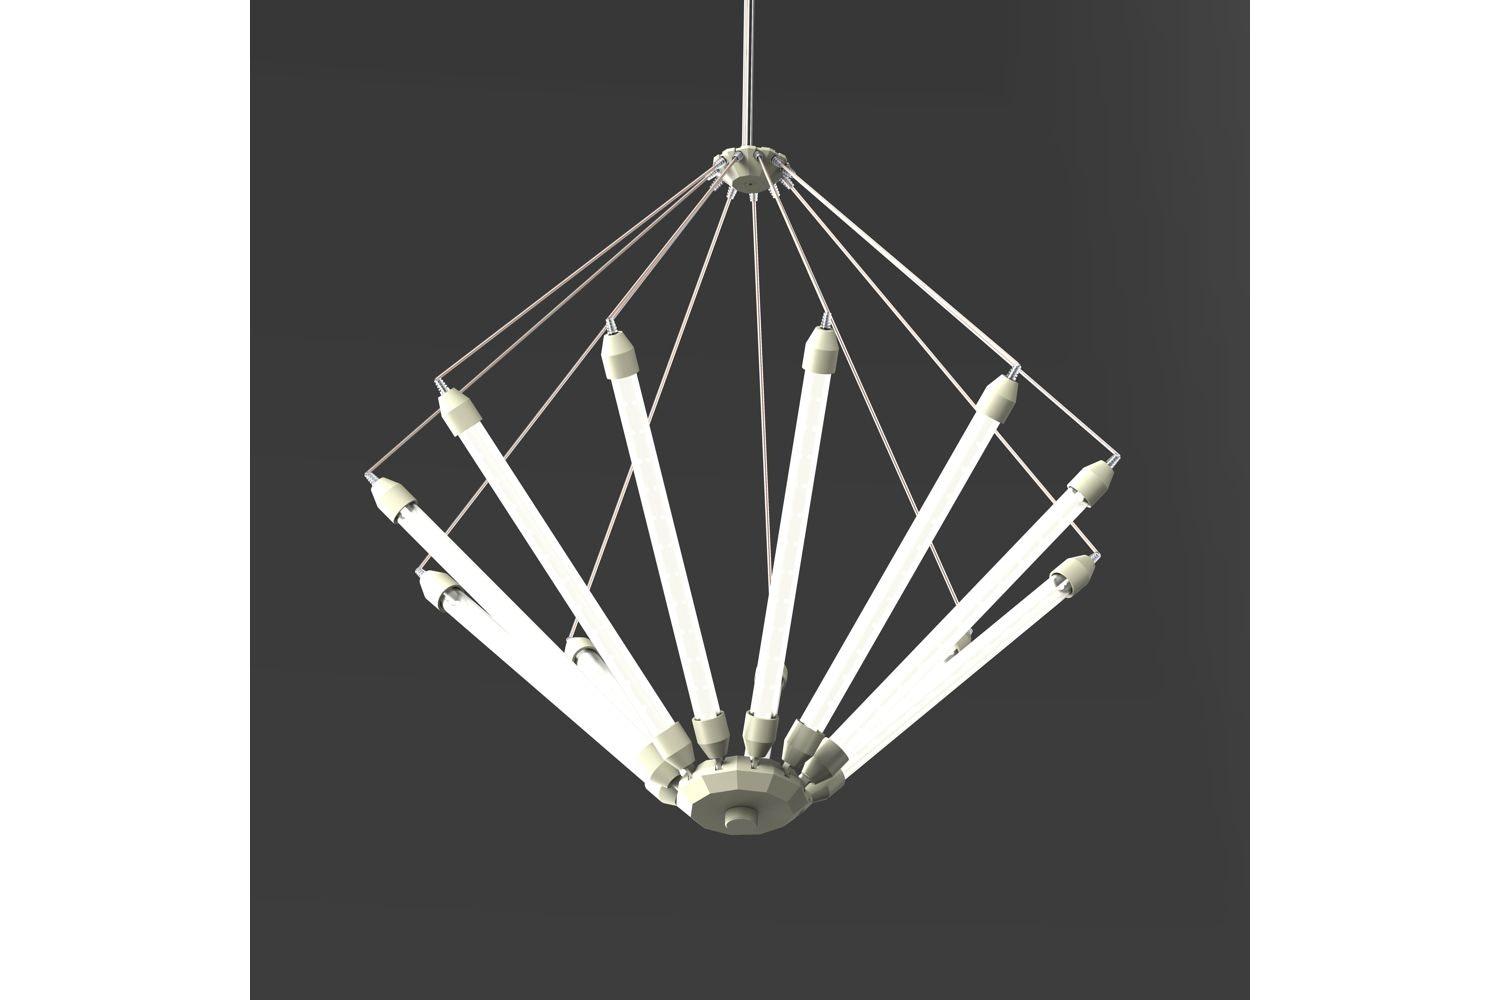 Kroon Lamp by ZMIK for Moooi